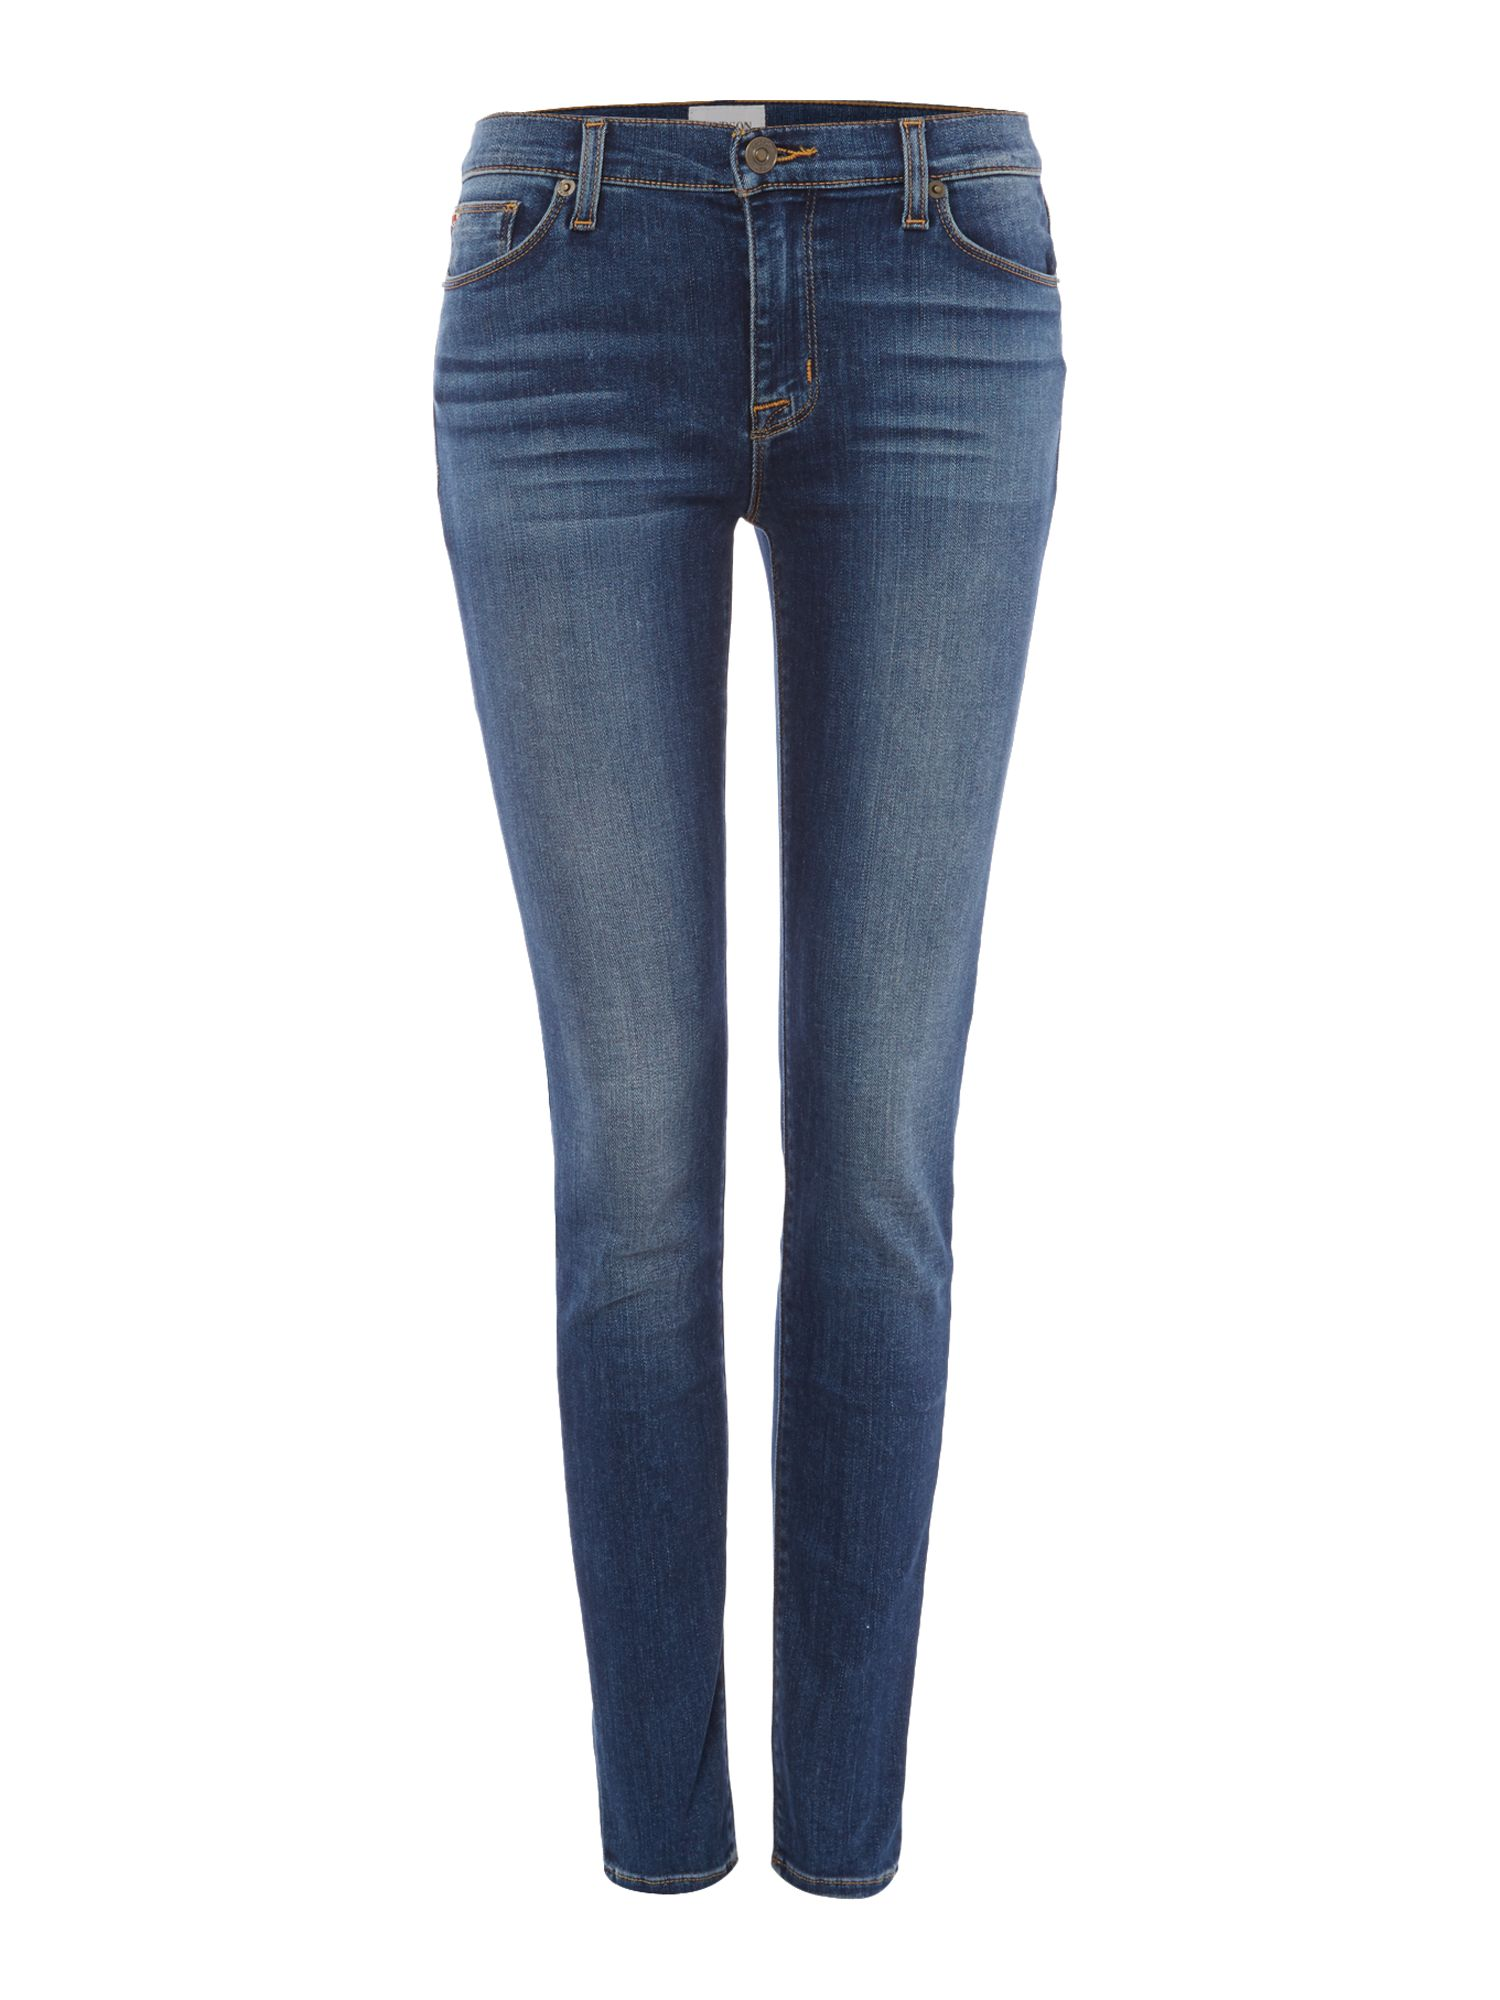 Hudson Jeans Nico midrise superskinny jeans in grave Denim